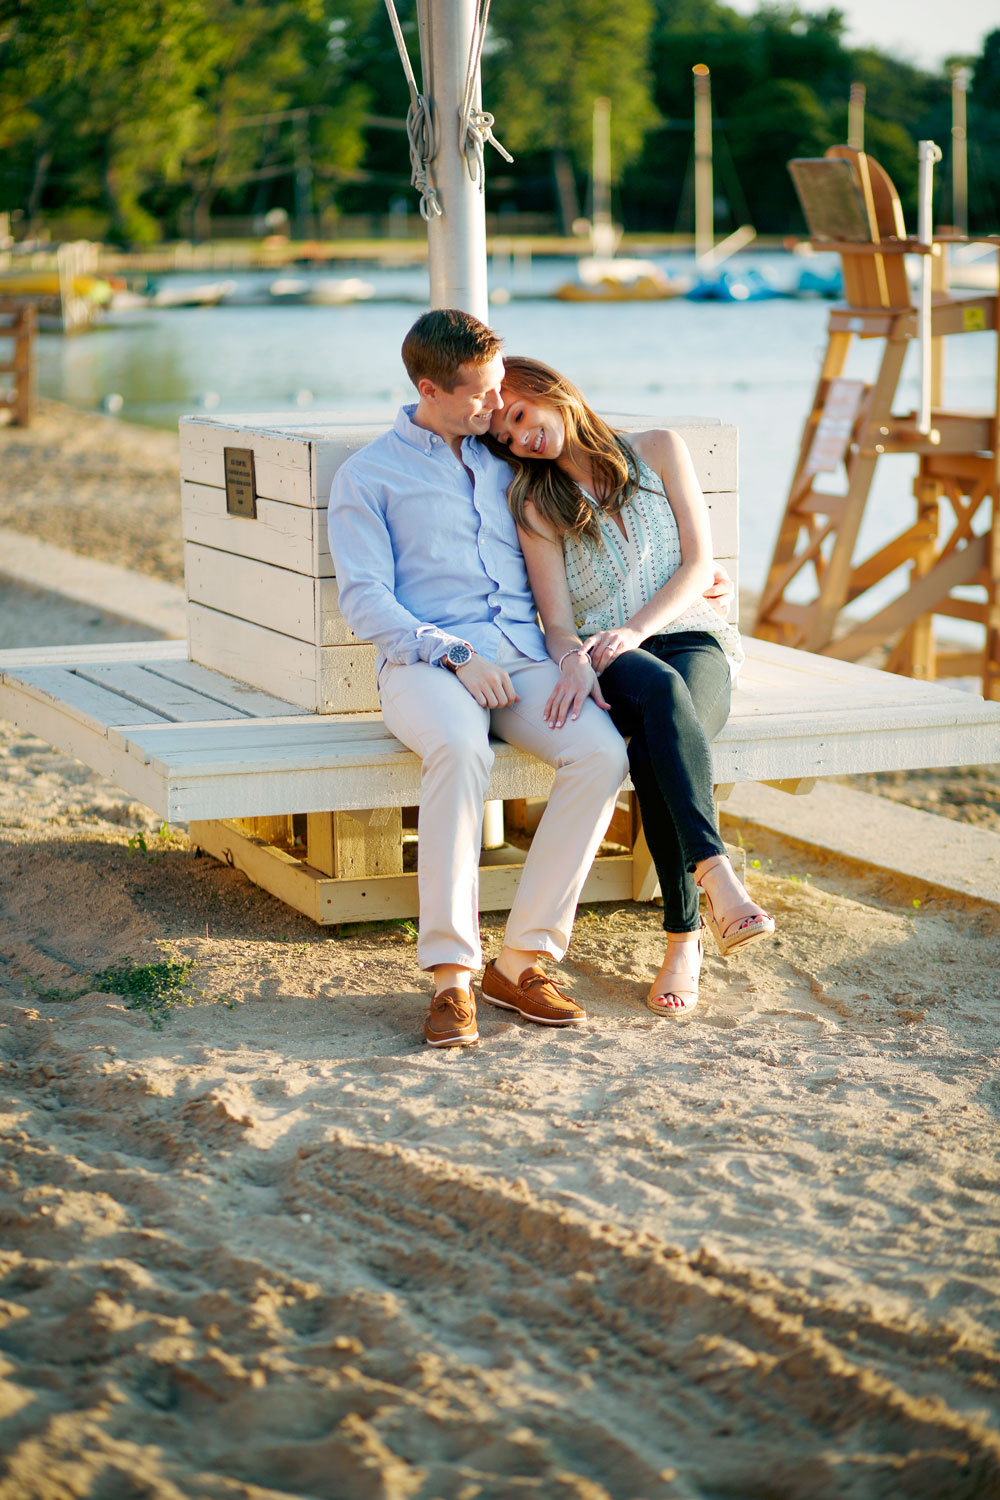 crystal-lake-engagement-session-main-beach-wedding-ruthie-hauge-photography.jpg